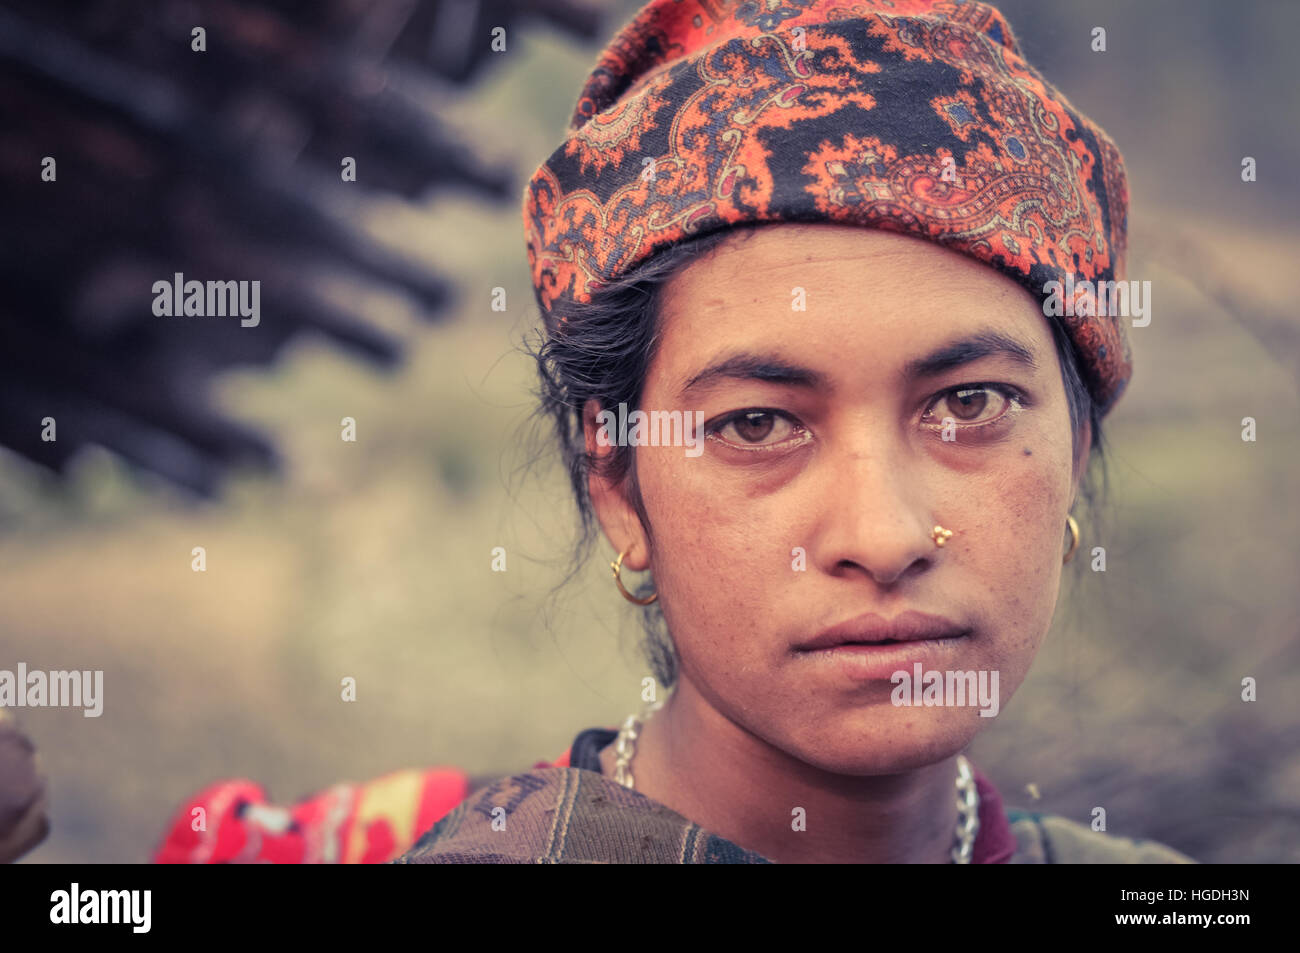 Dolpo, Nepal - circa May 2012: Native woman with piercing and earrings wears orange headcloth with brown eyes in Stock Photo